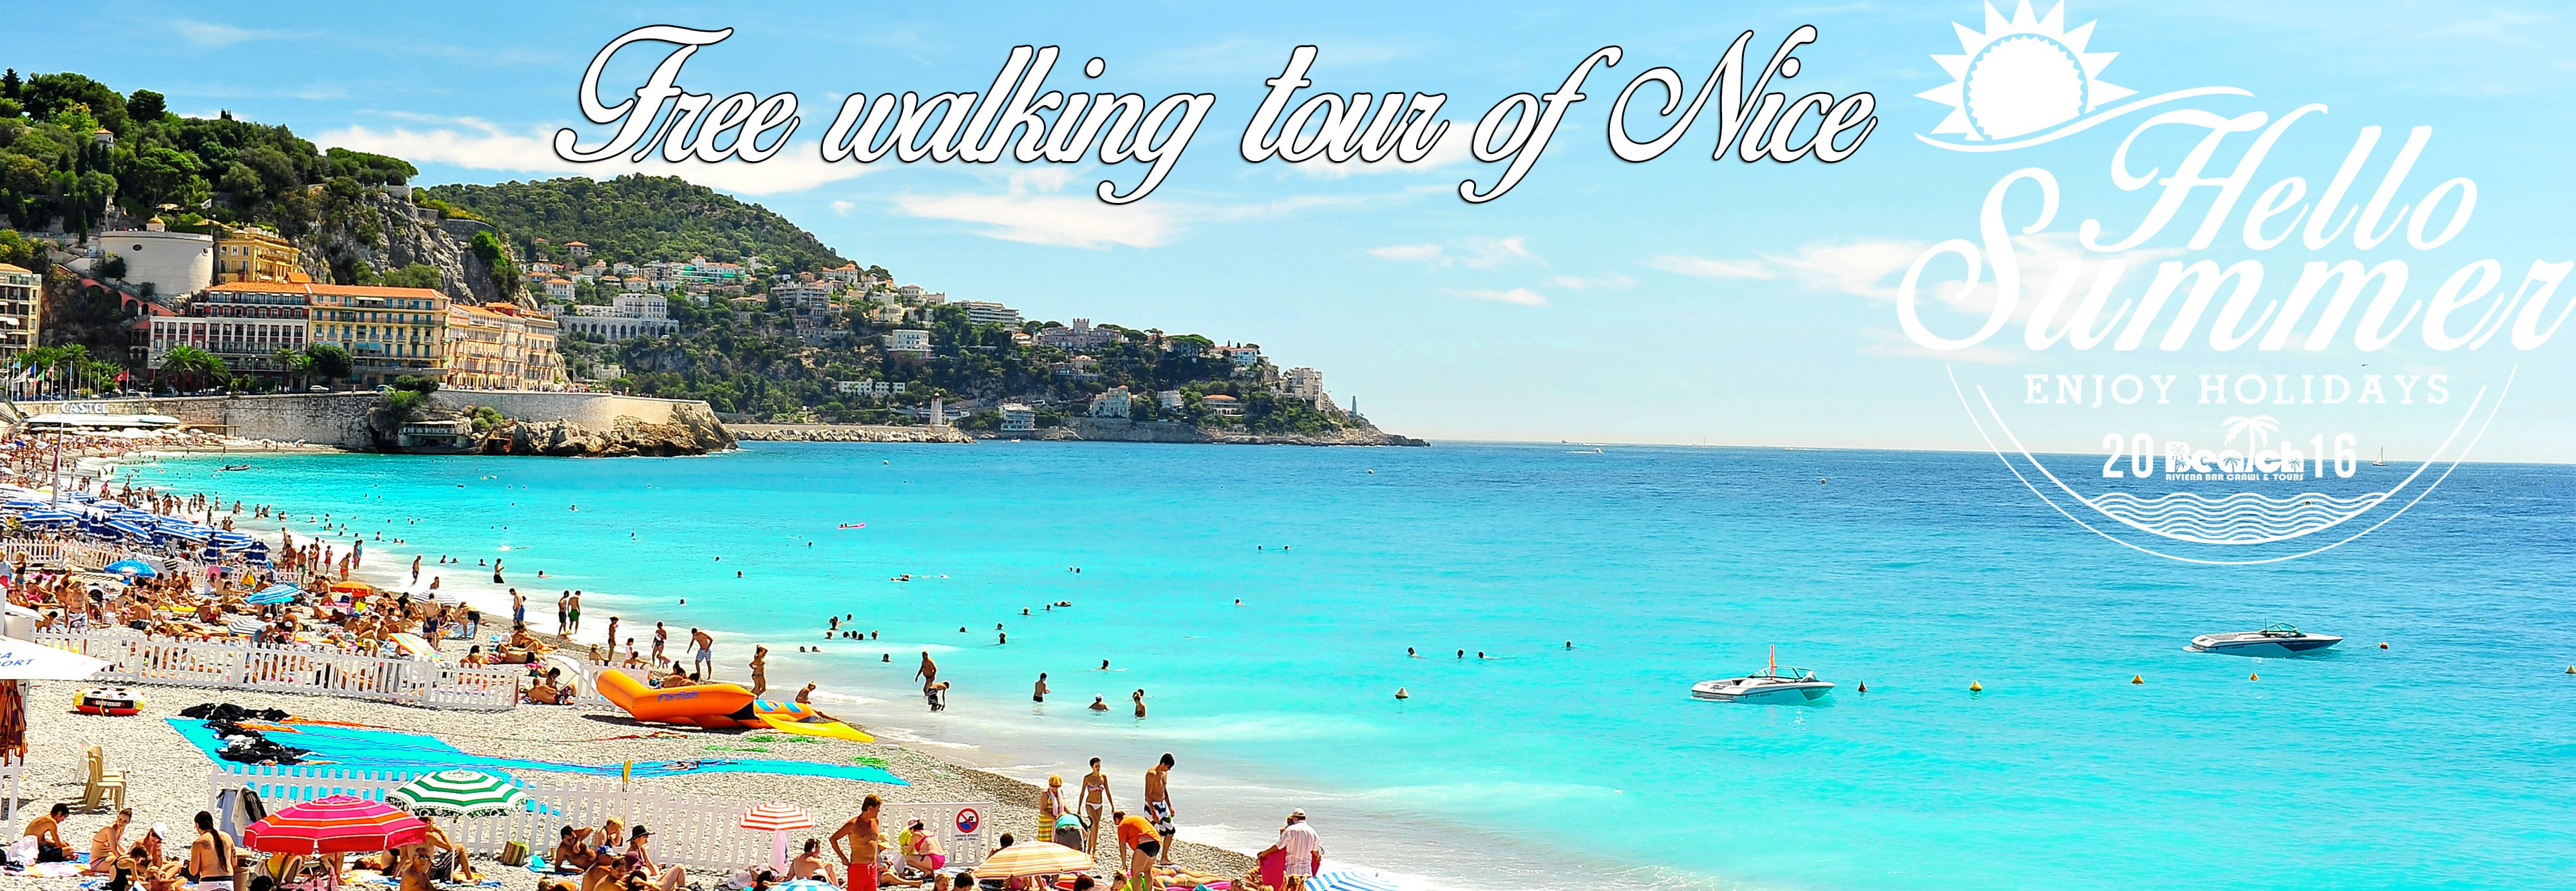 WHAT TO DO IN NICE THINGS TO DO IN NICE